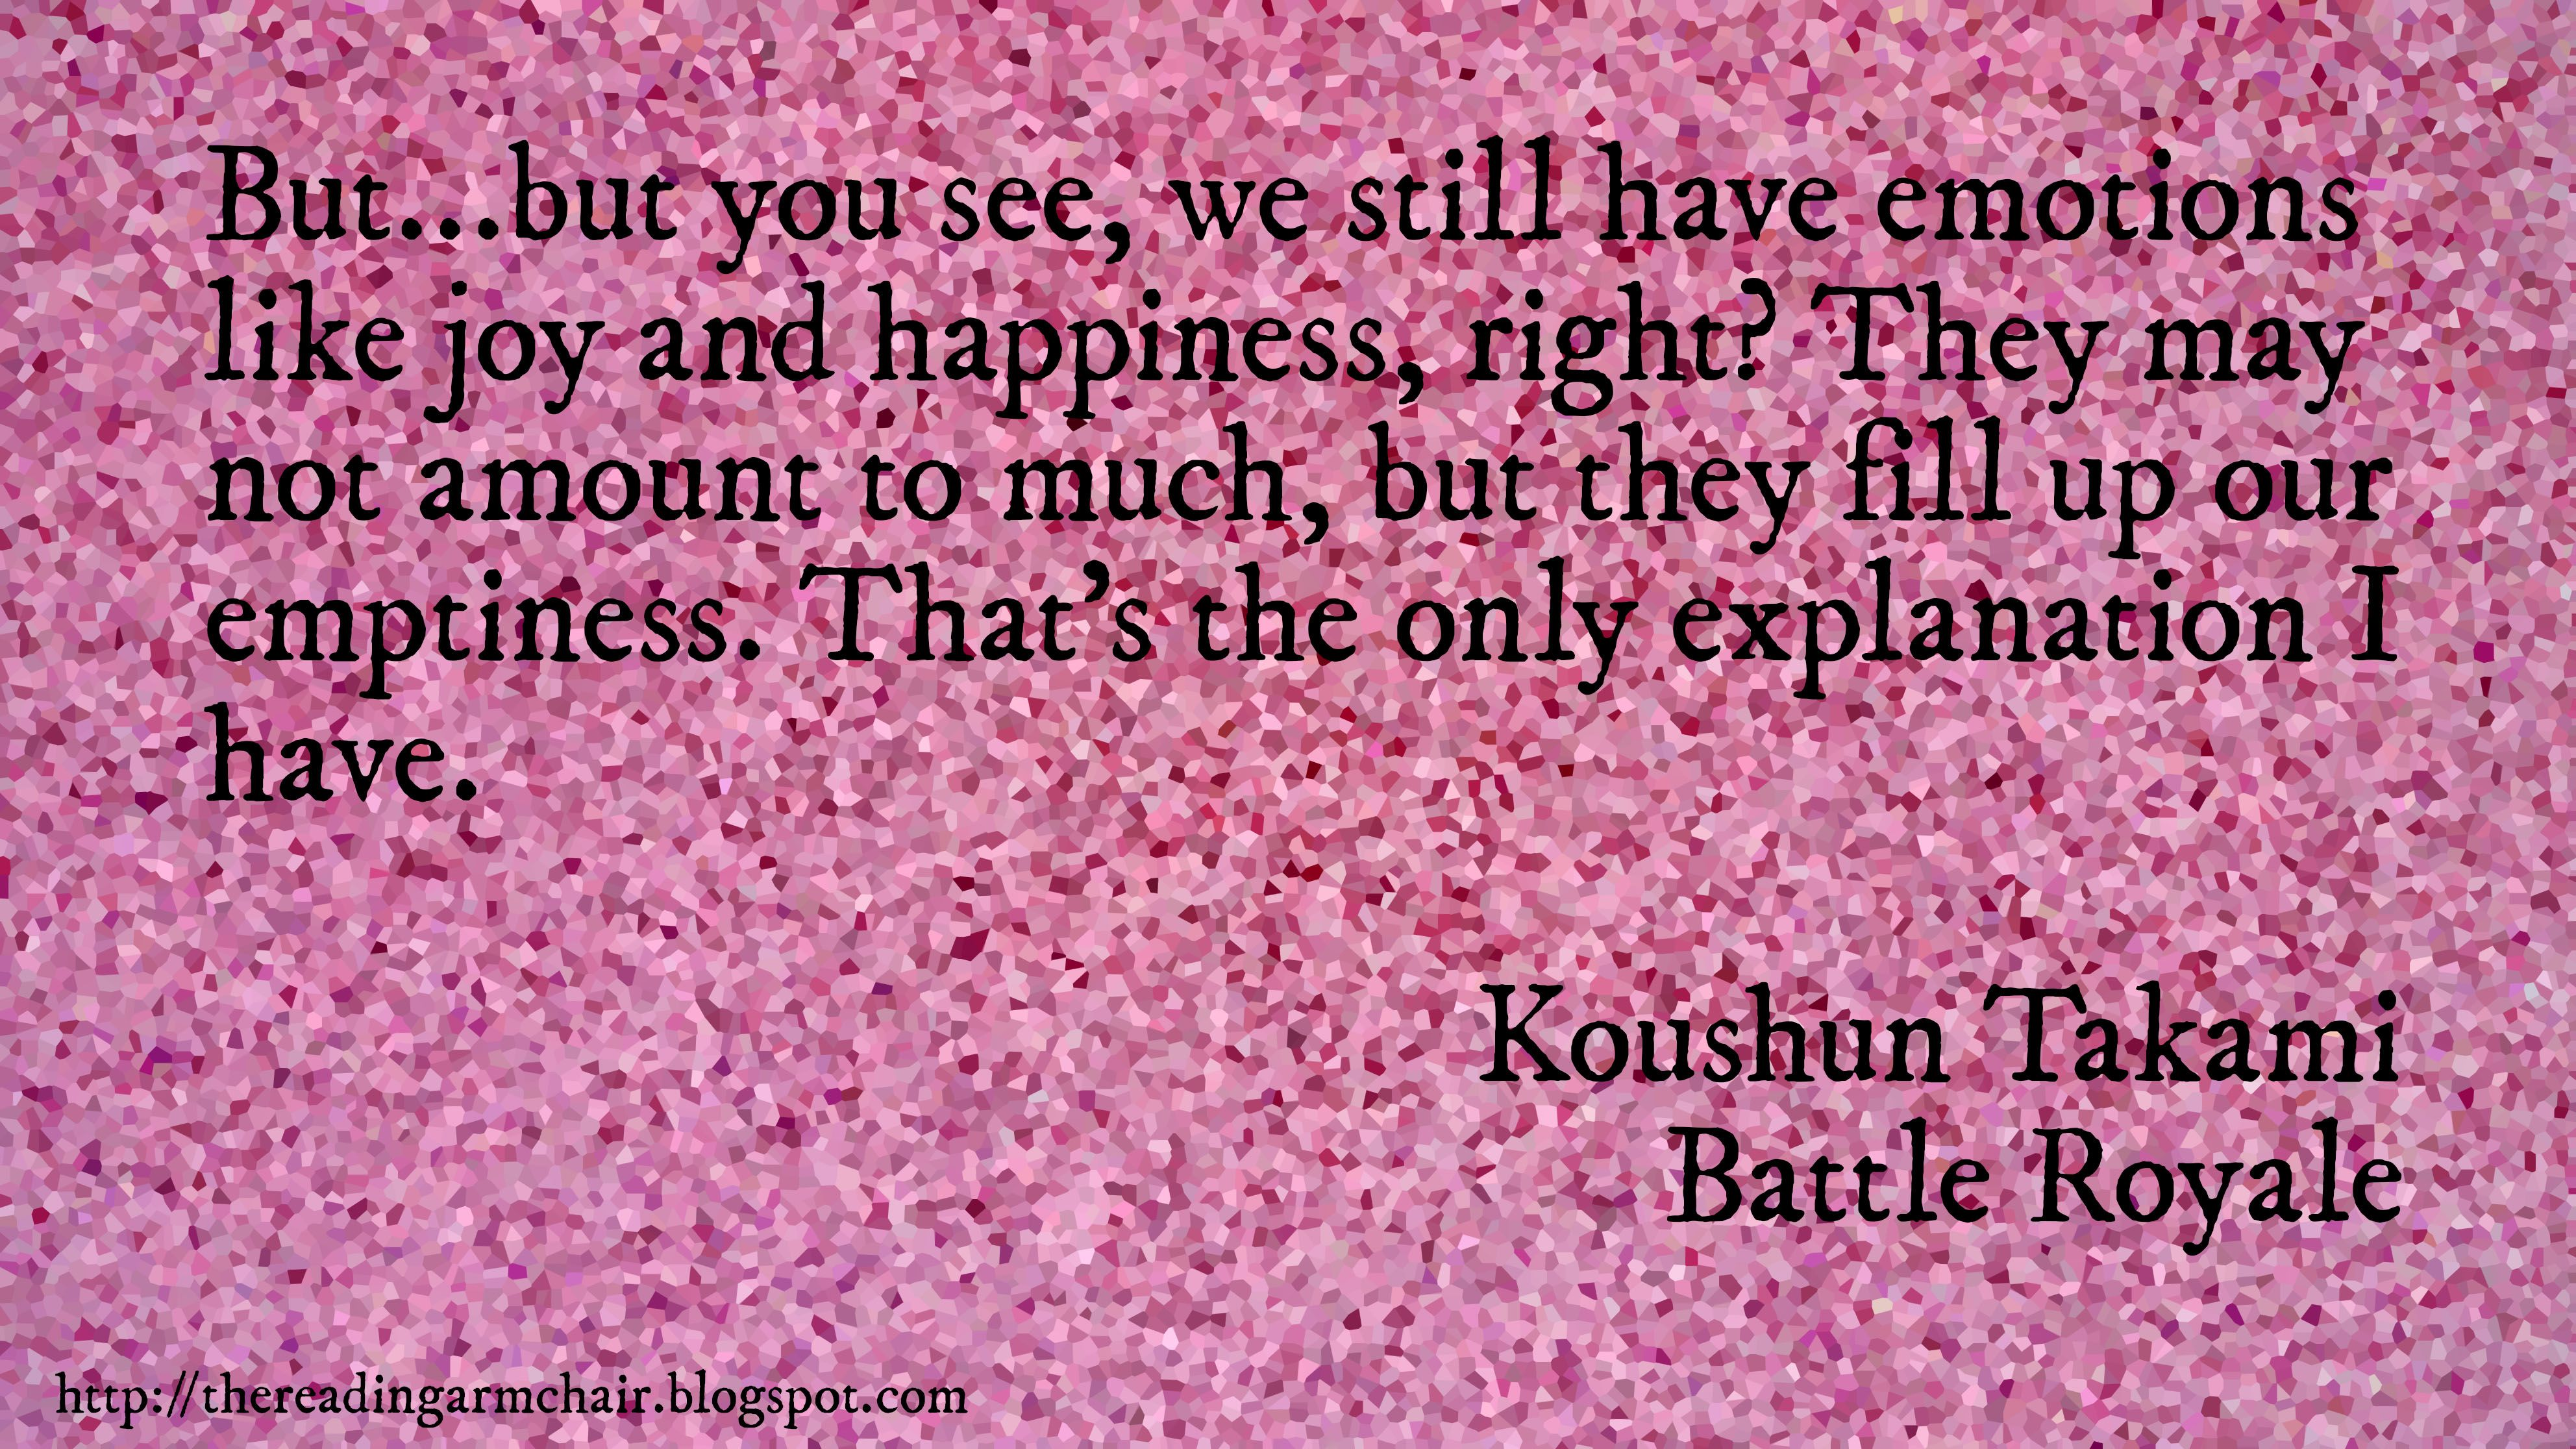 Quote from Battle Royale by Koushun Takami